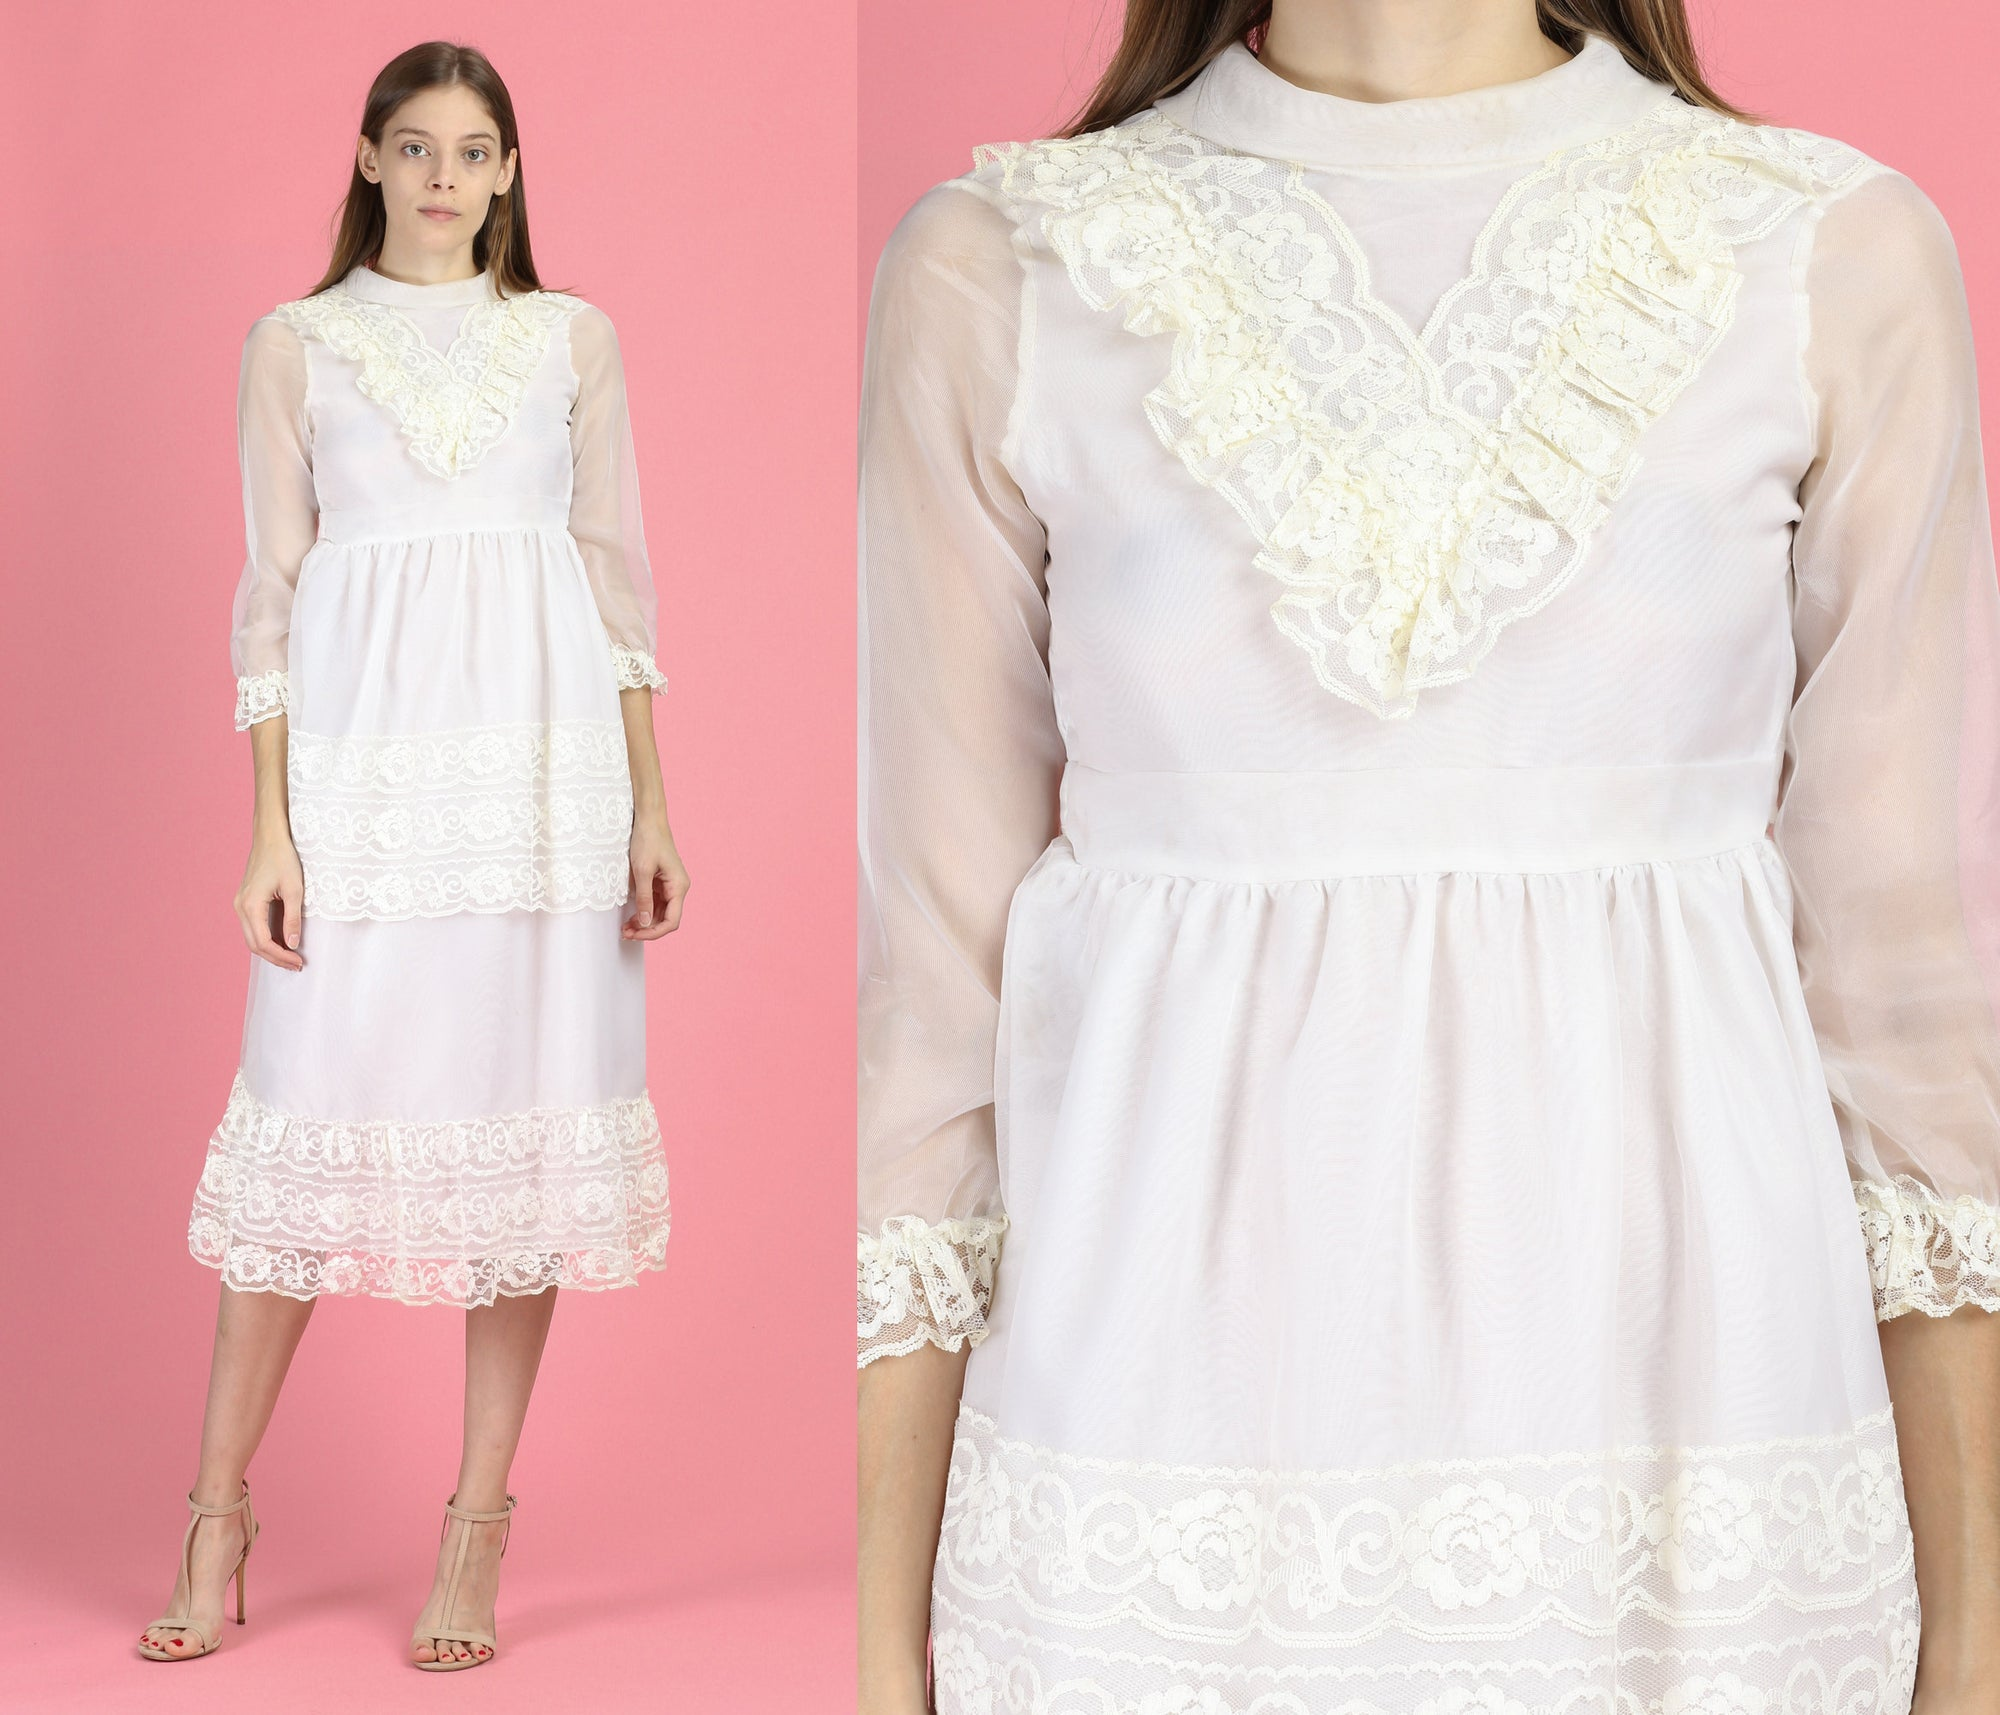 70s Girl's White Lace Formal Dress - Women's XXS